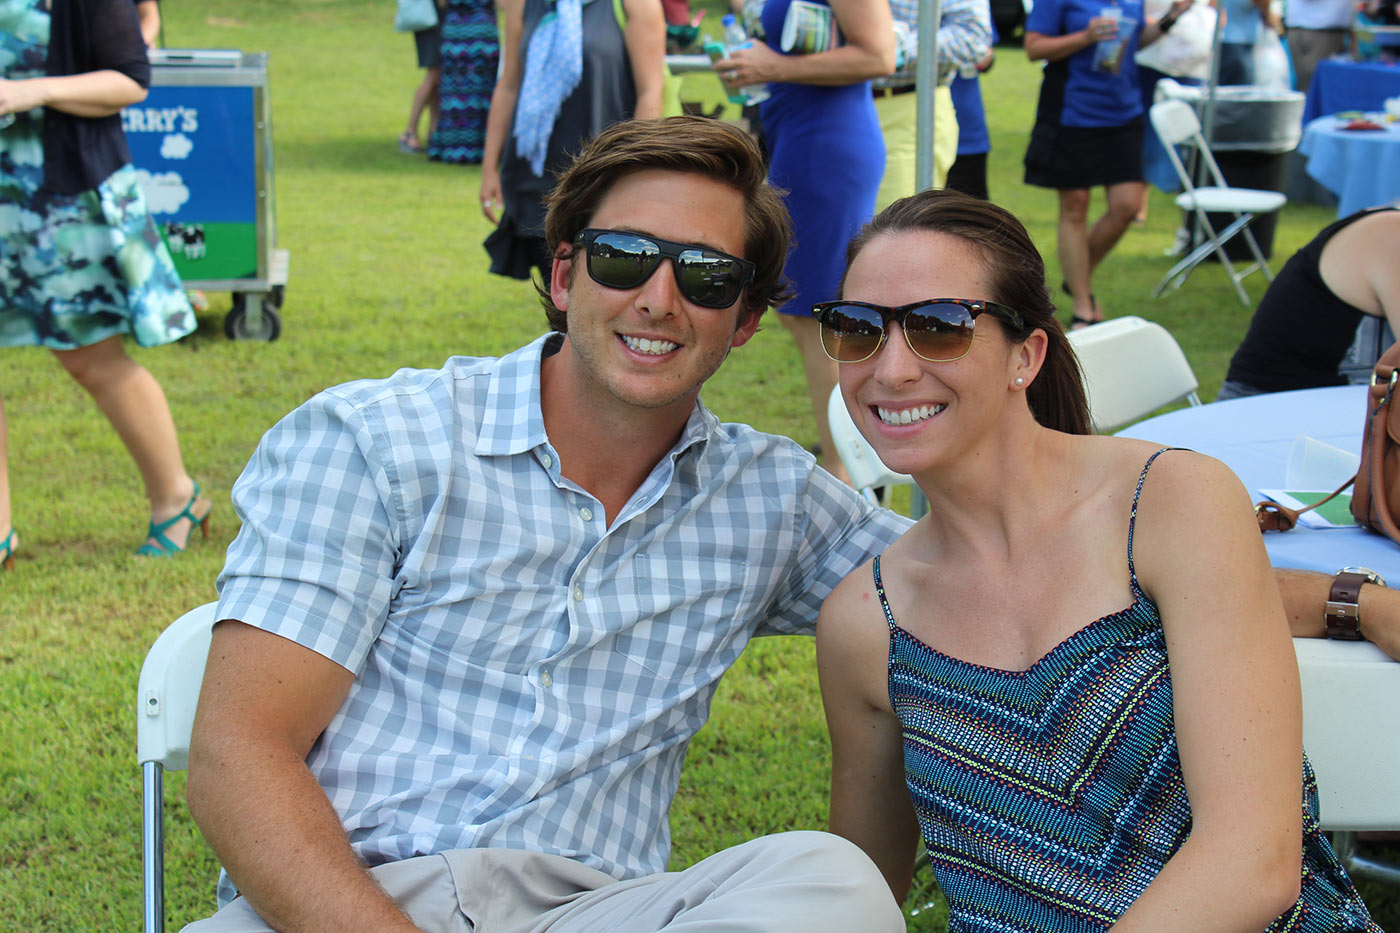 a couple wearing sunglasses smiling